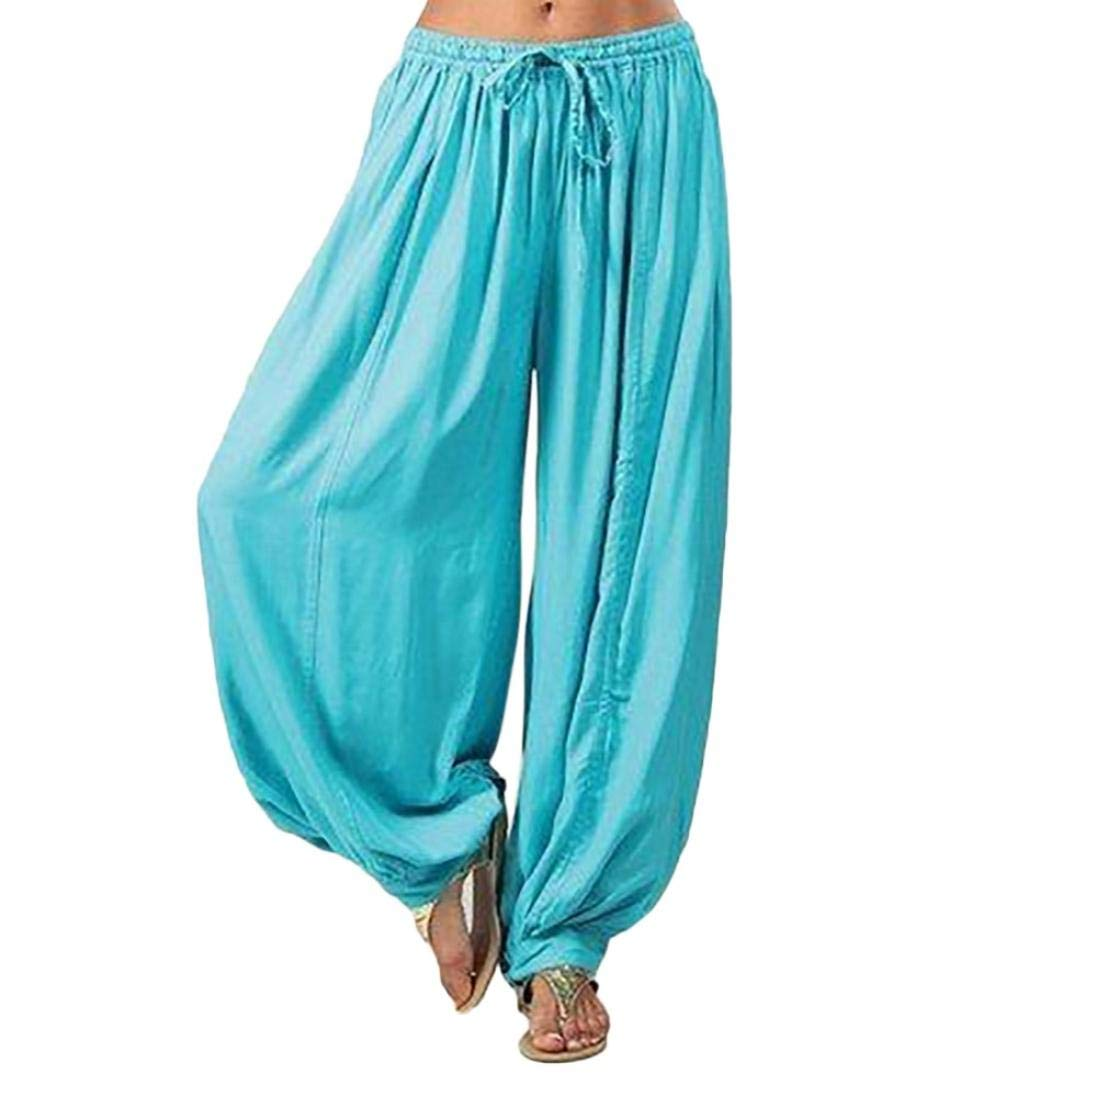 Pants For Women, Clearance Sale! Pervobs Women Loose Elastic Waist Harem Pants Yoga Bloomers Pants Trousers(L, Blue)